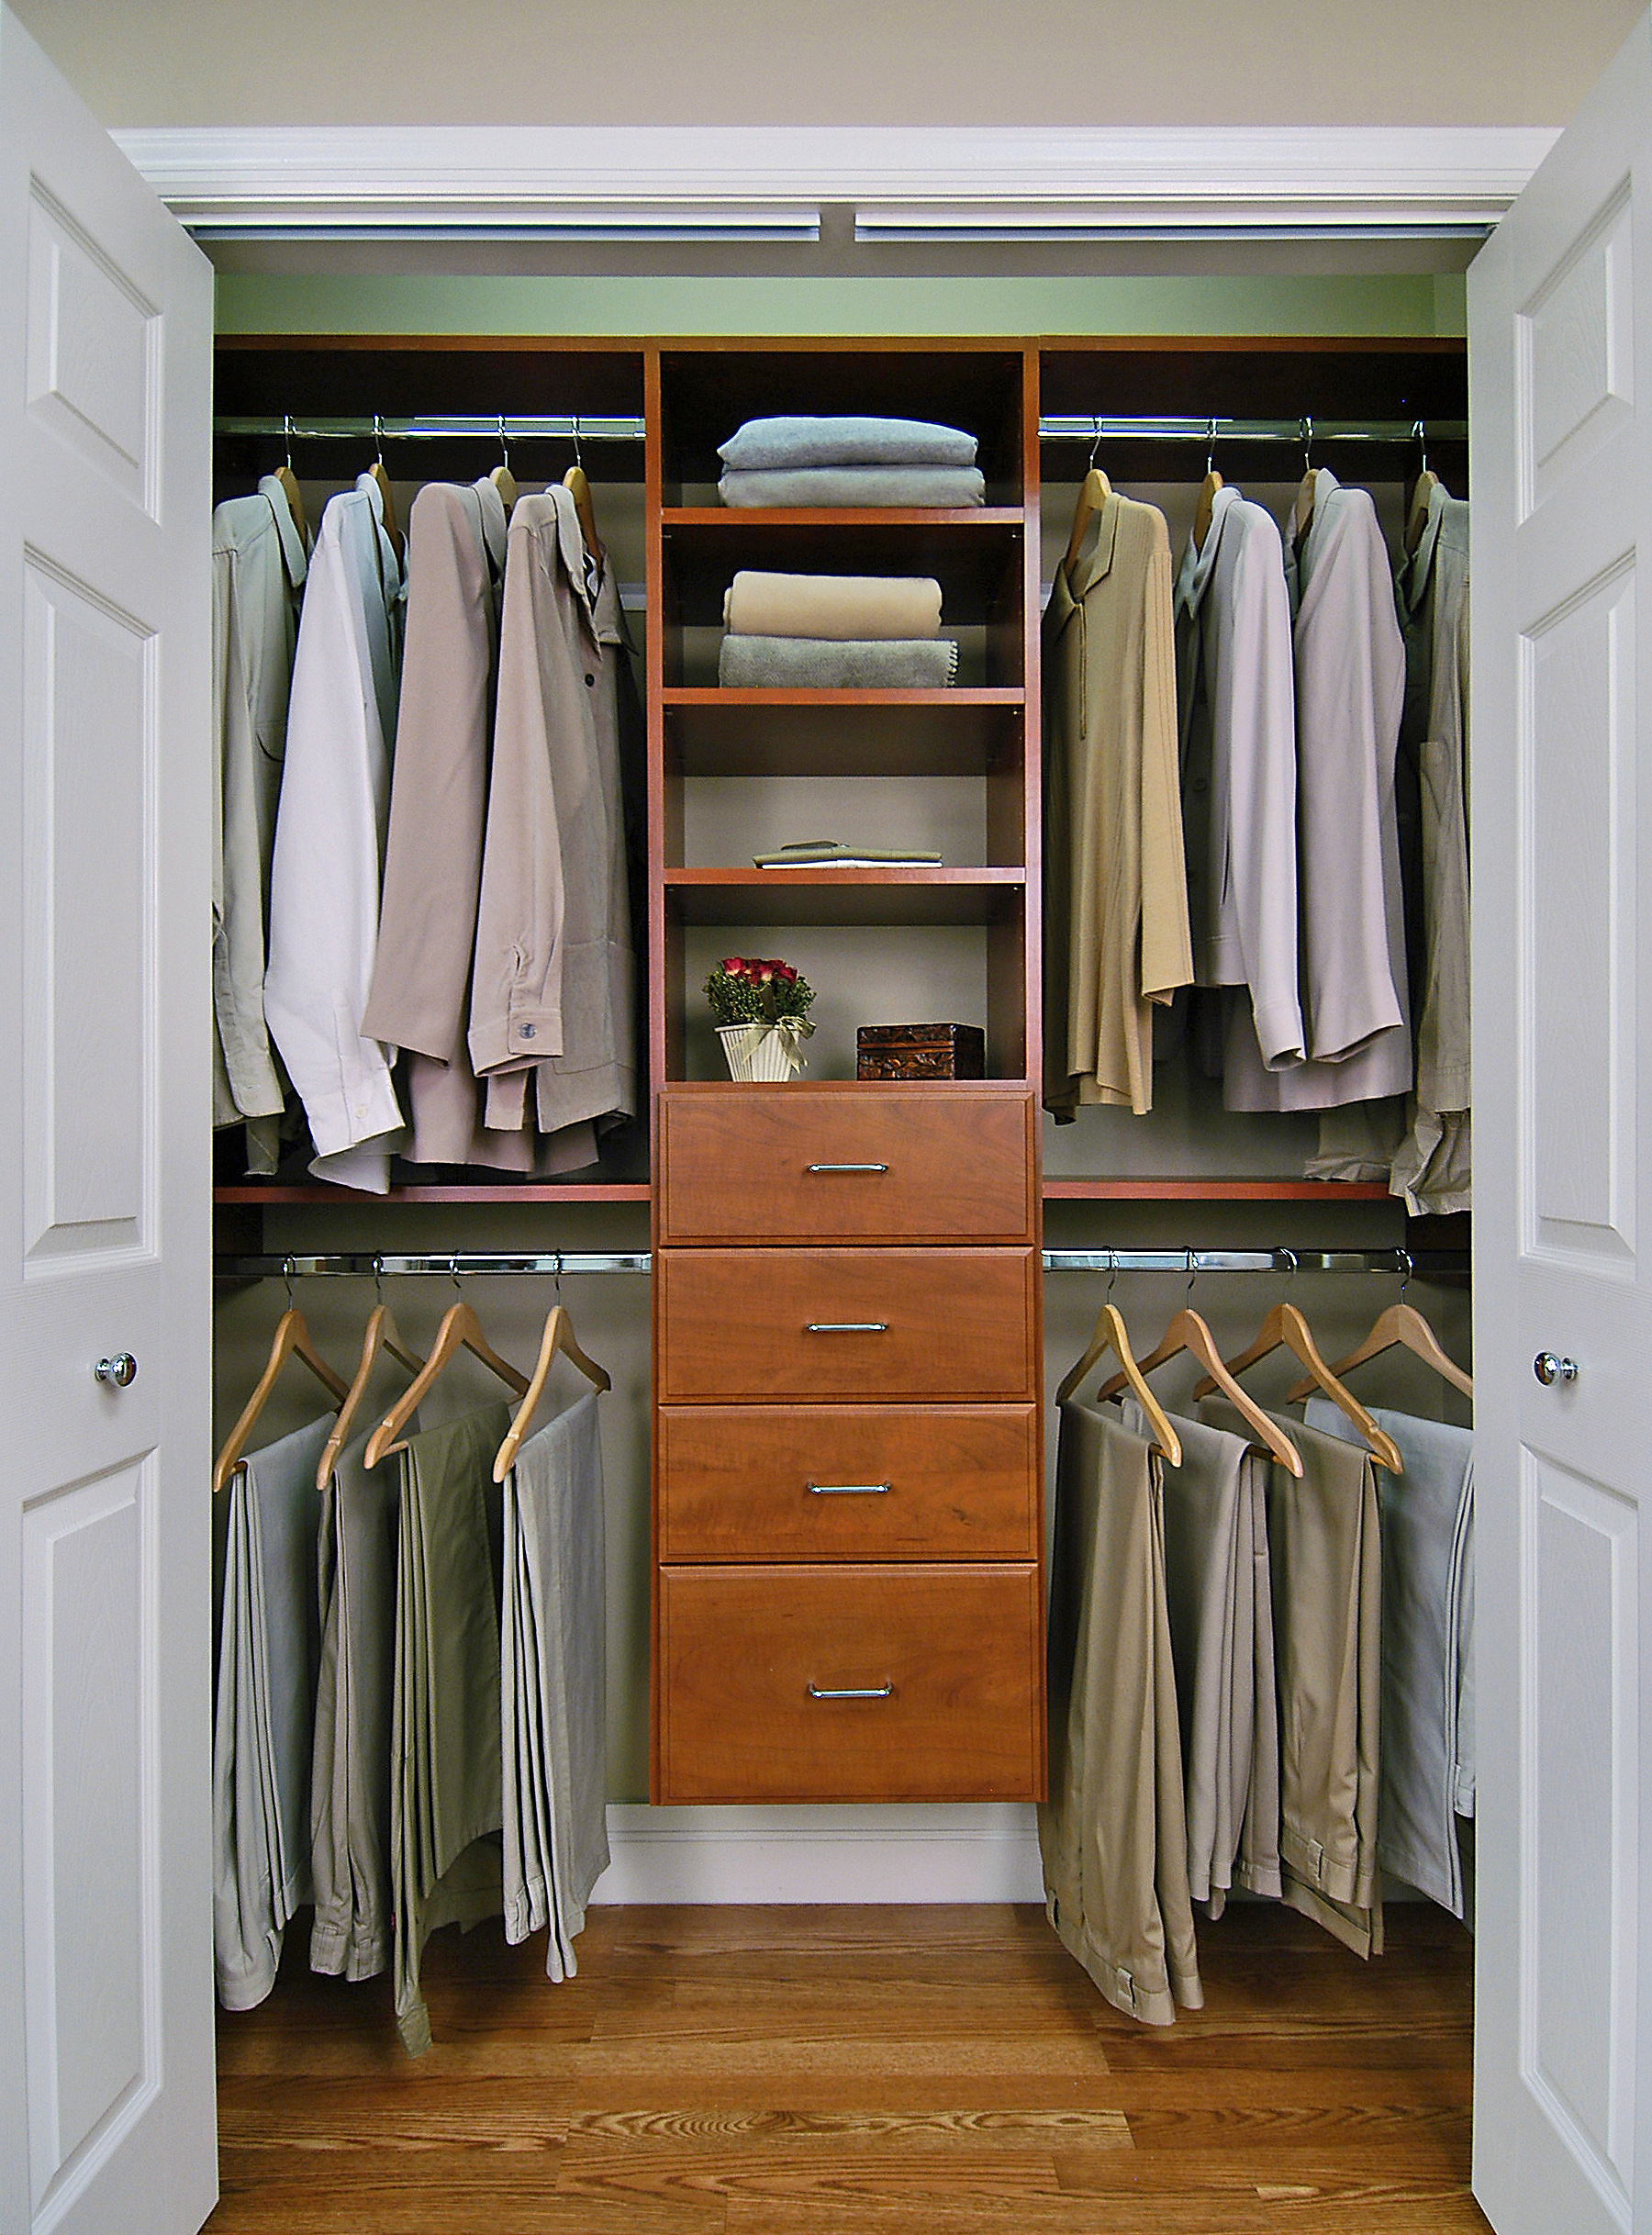 Wardrobe closet wardrobe closet design ideas for small spaces for Walk in closet remodel